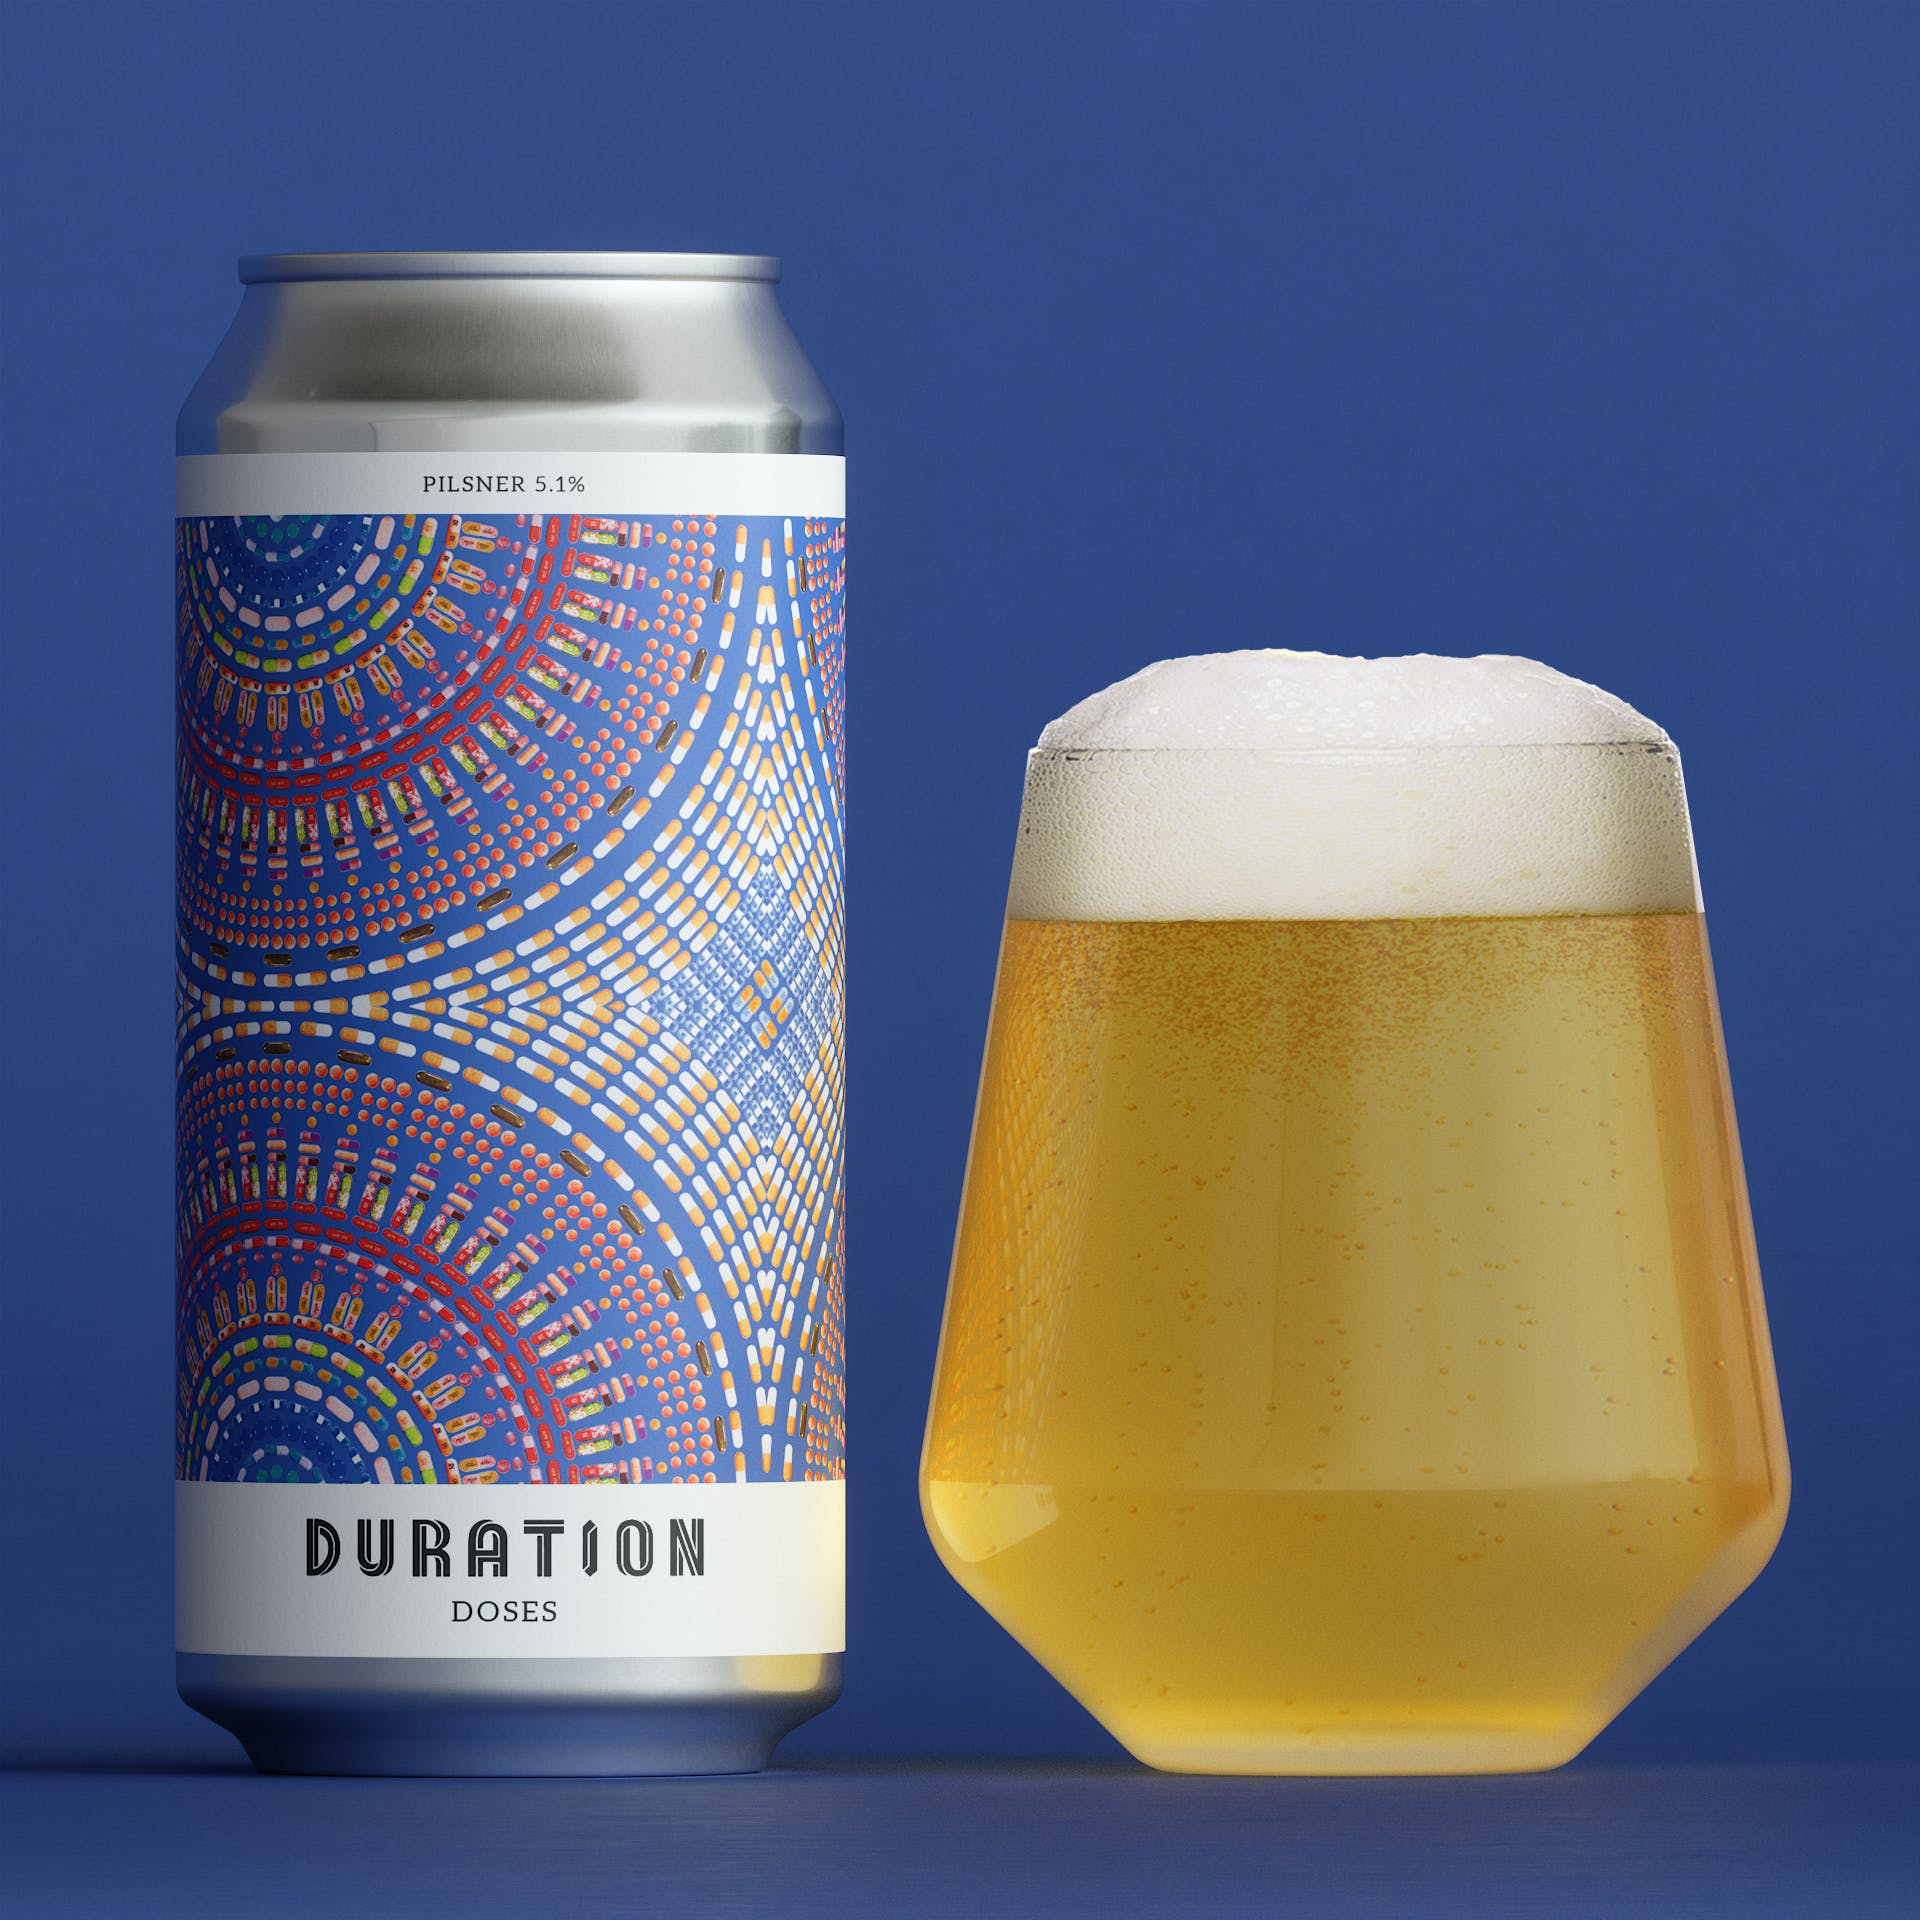 Doses Pilsner 5.1% 440ml Duration Brewing